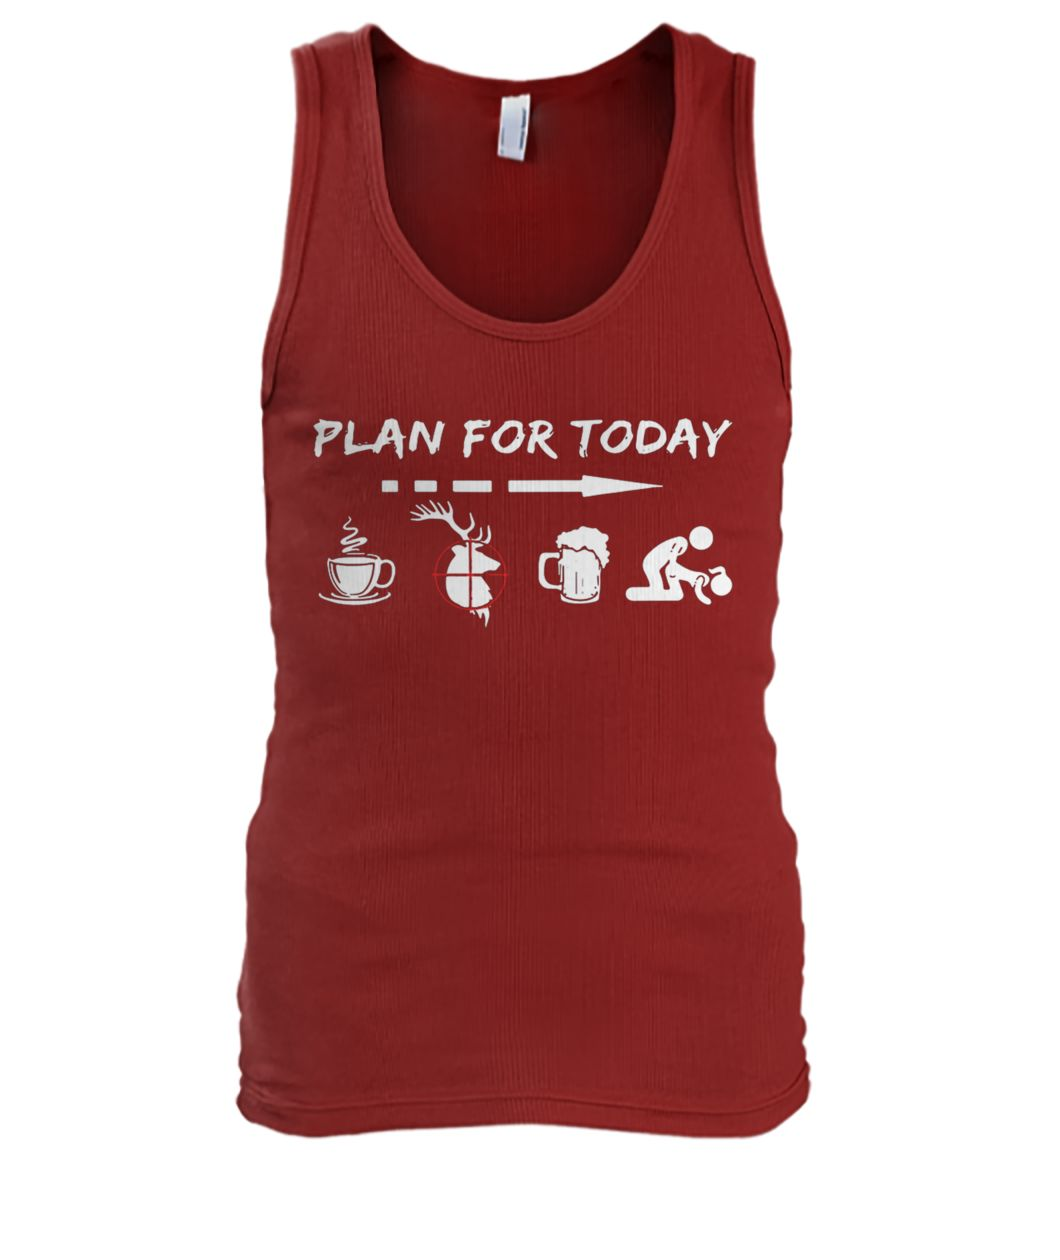 Plan for today are coffee hunter beer and sex men's tank top